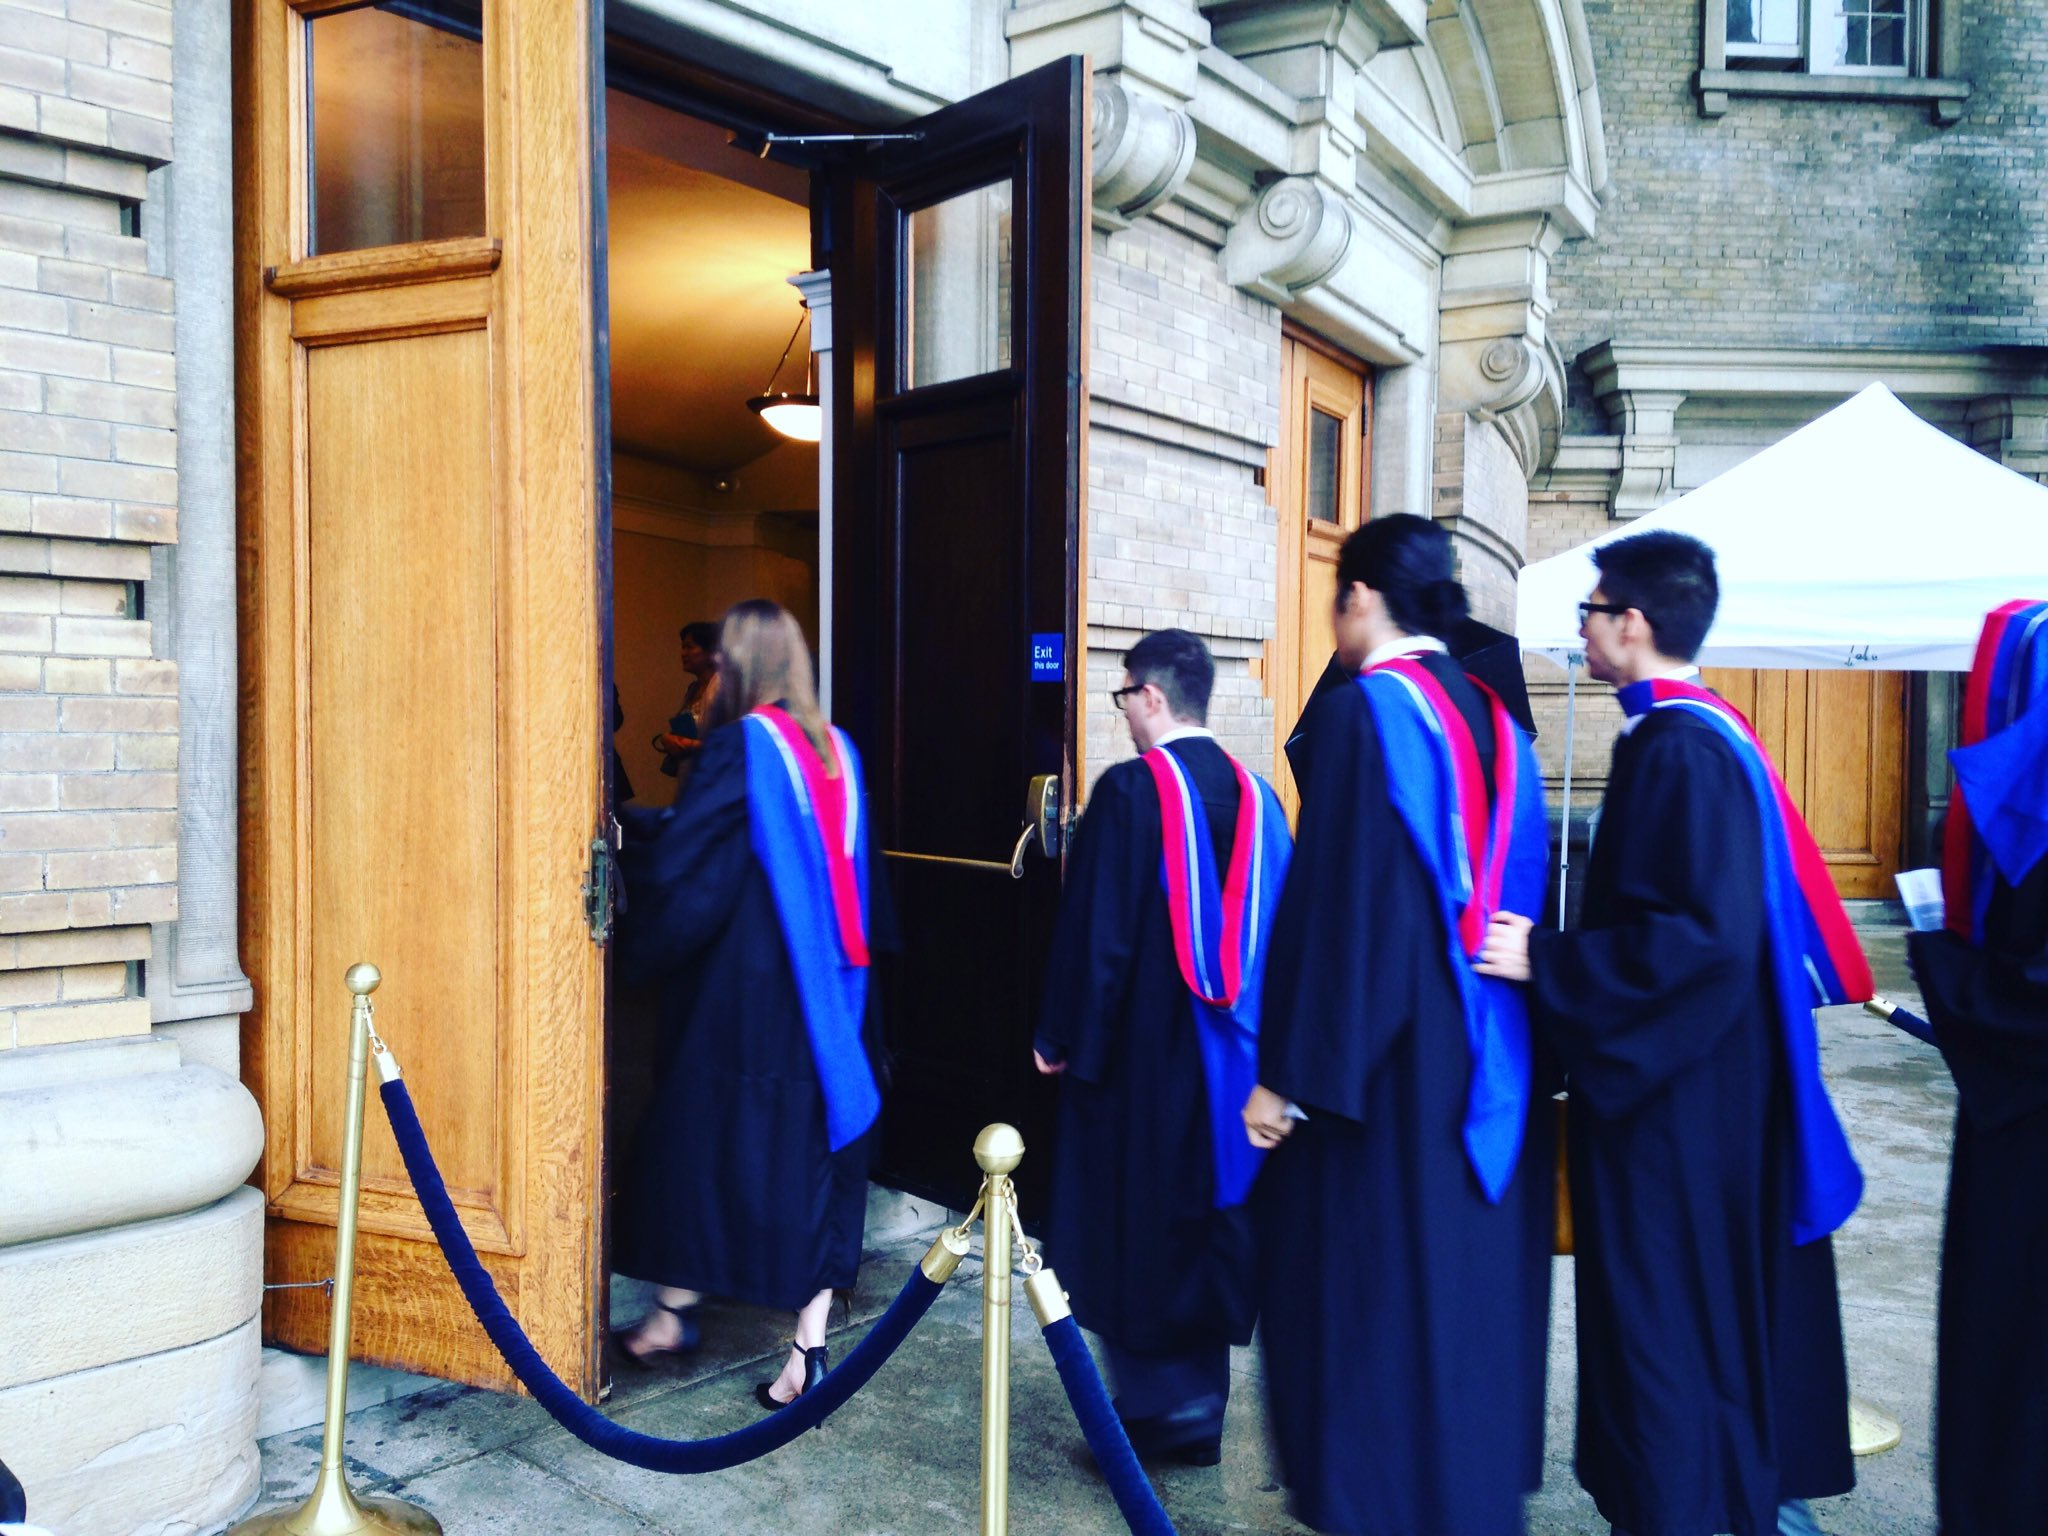 Convocation is underway! Share your moments from the ceremony with #UofTGrad17 & #UofTMed. https://t.co/5AkExxXQm2